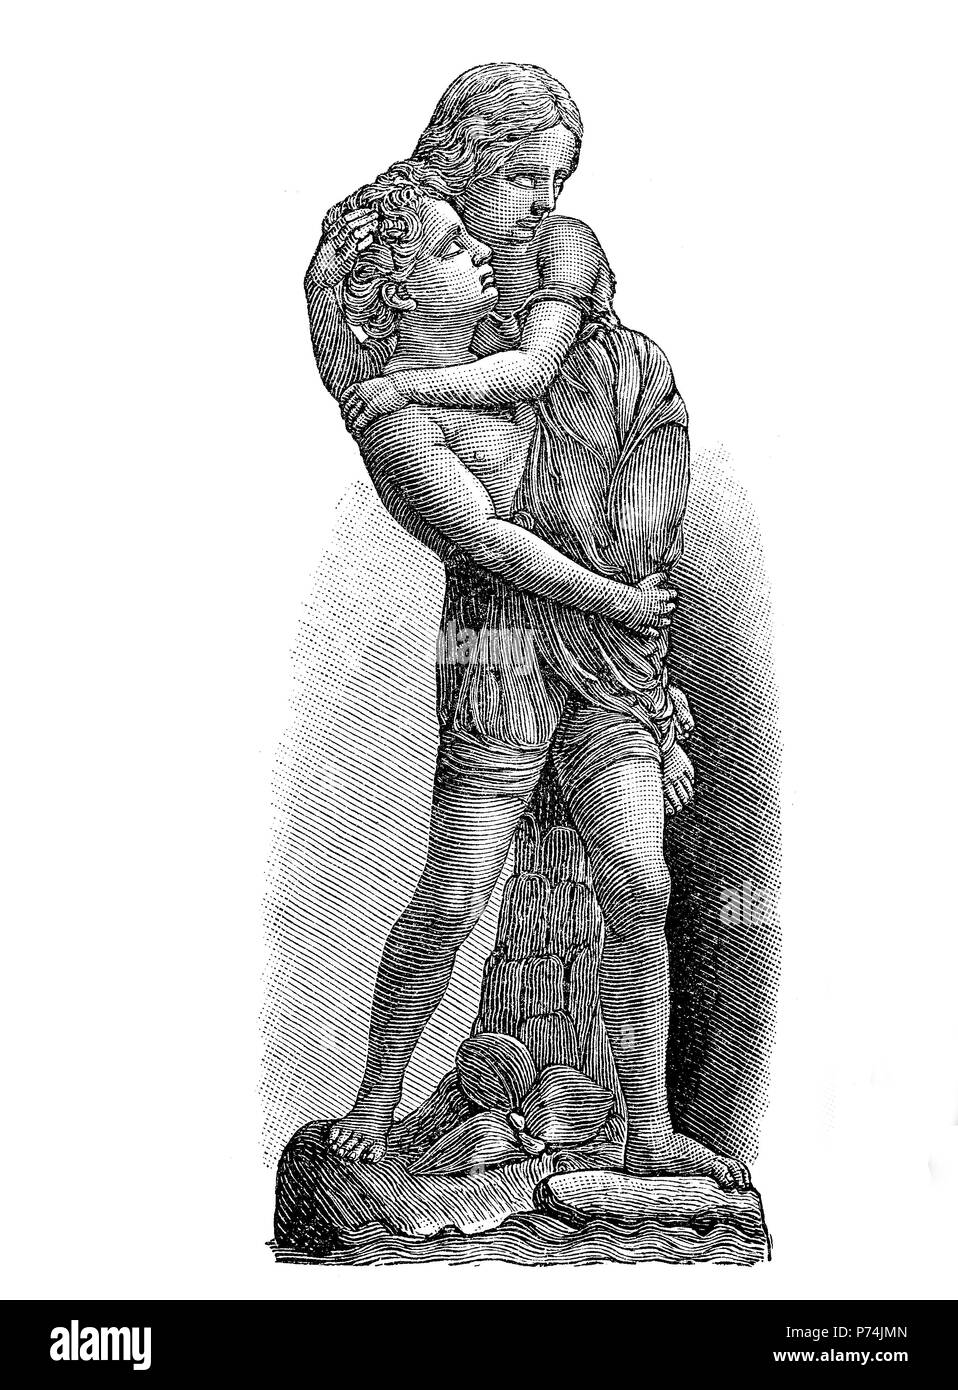 Paul and Viginia, by W.C. Marshall, digital improved reproduction from an original print from the year 1881 - Stock Image